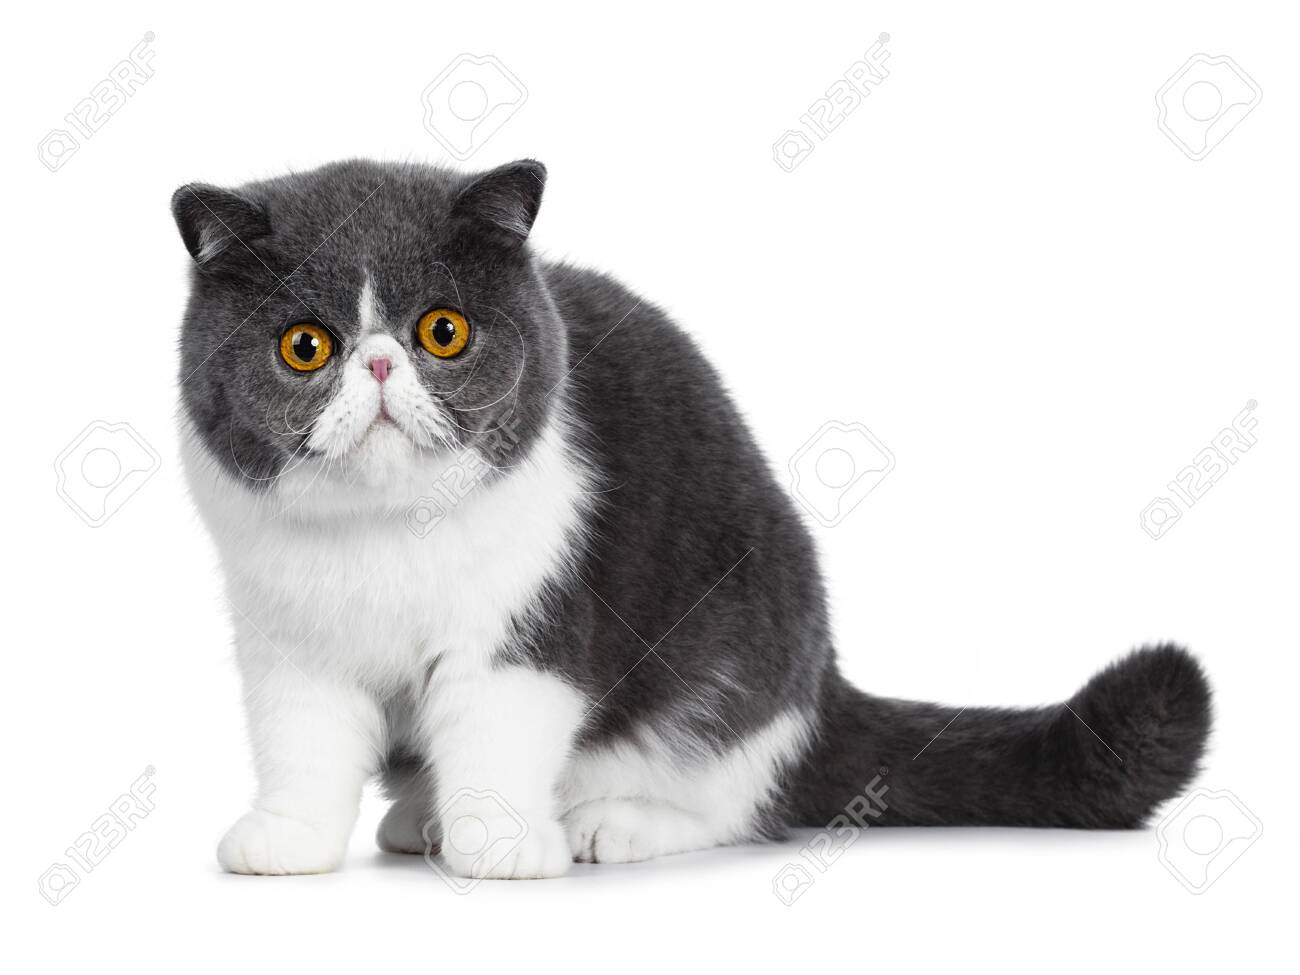 Cute blue with white young Exotic Shorthair cat, sitting side ways. Looking curious straight into a lens with amazing round orange eyes. Isolated on white background. Tail behind body. - 120032574